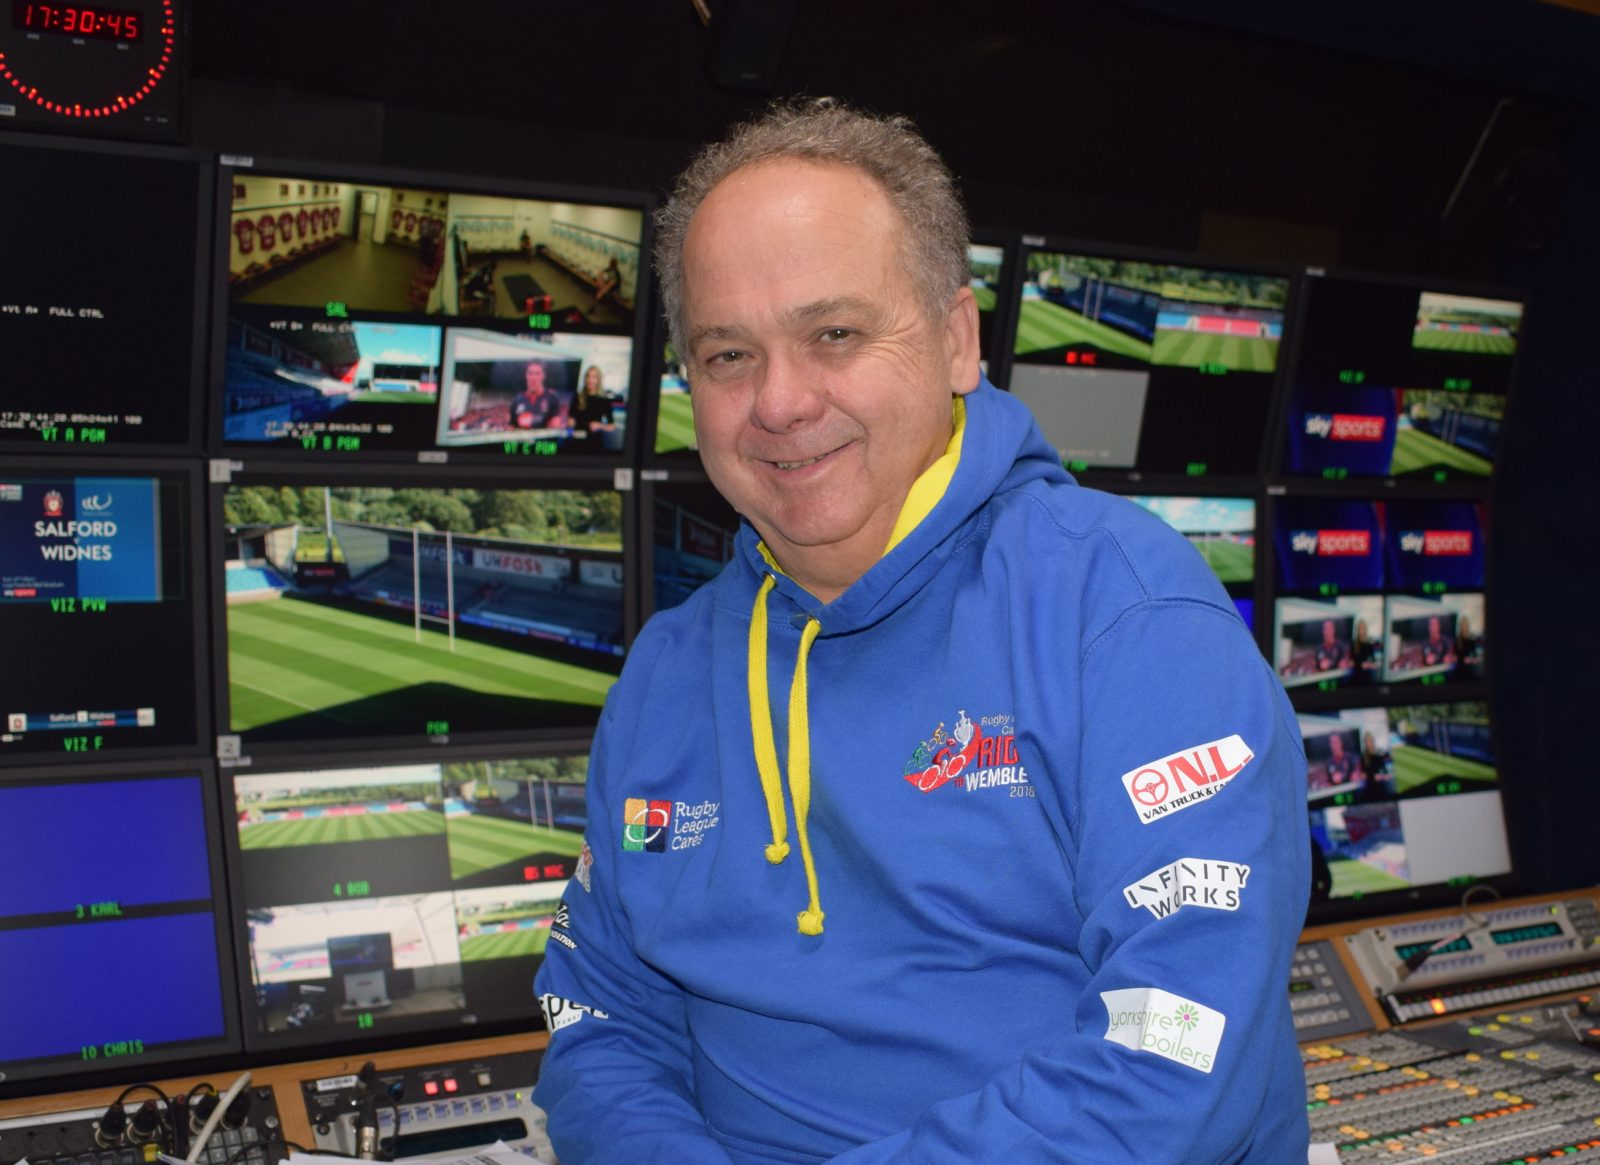 Sky Sports' Rugby League supremo joins the Ride to Wembley